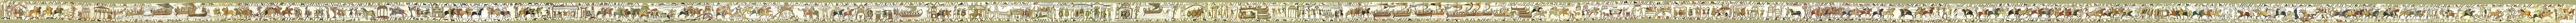 Teppich Von Bayeux Robin Hood Bayeux Tapiŝo Wikipedia S Bayeux Tapestry As Translated By Gramtrans